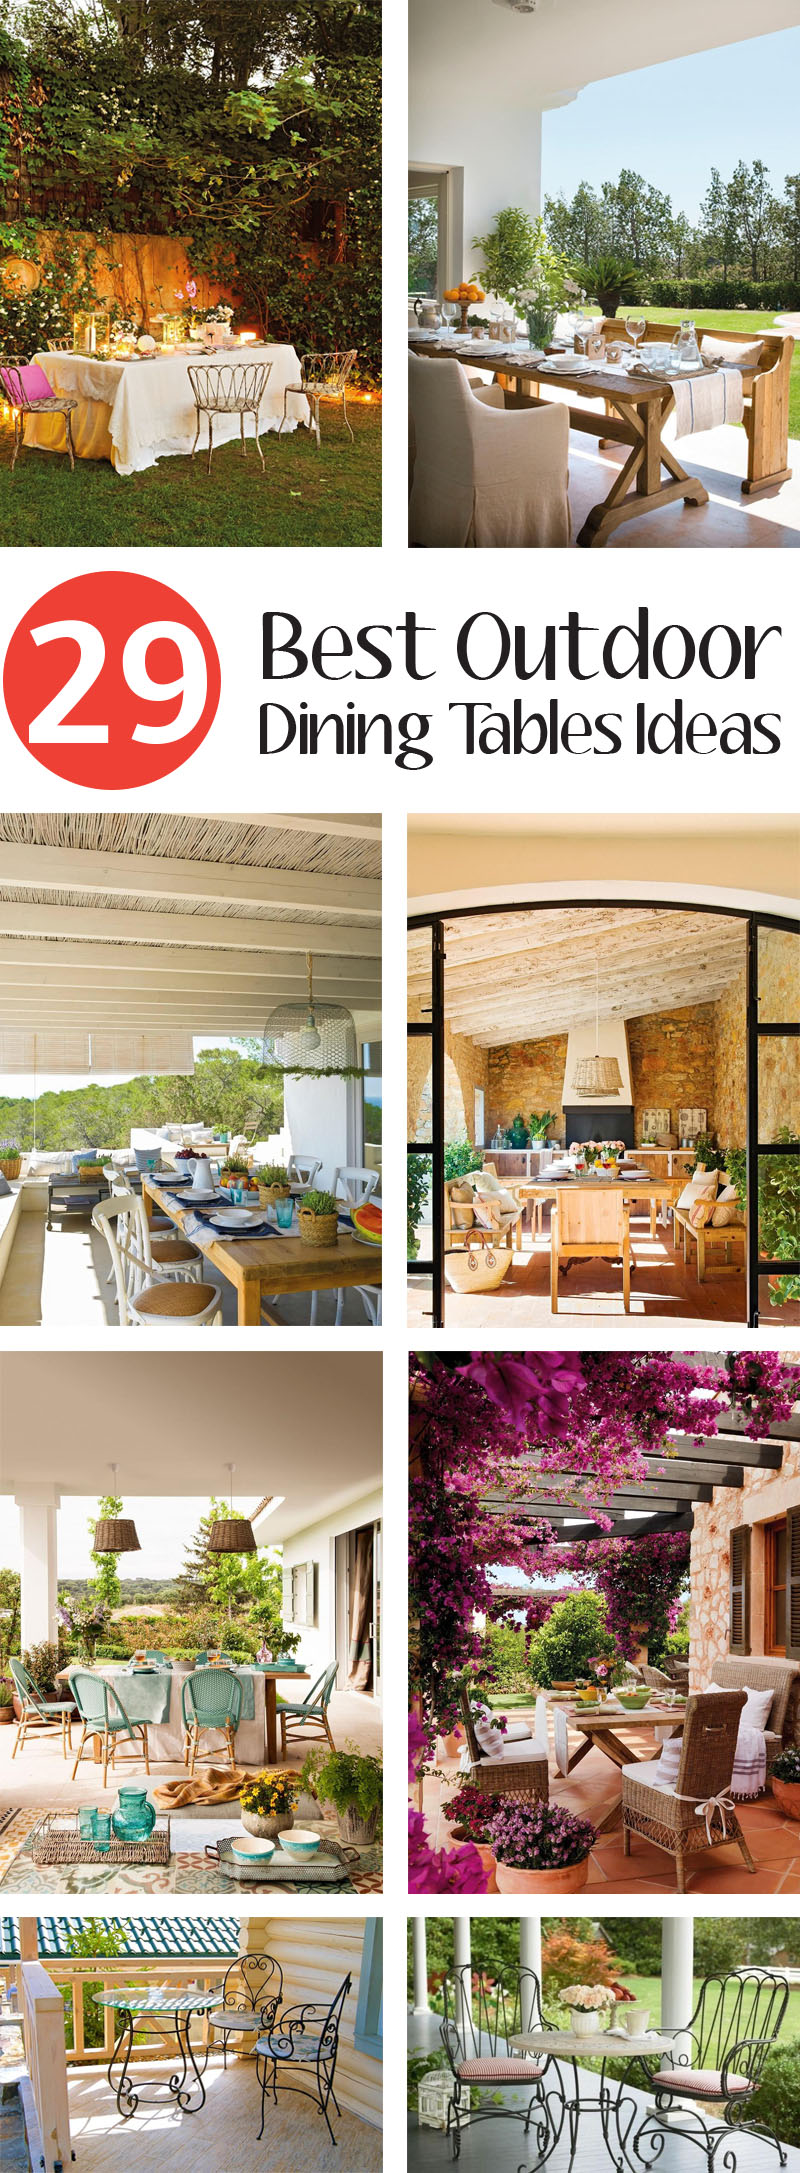 Best Outdoor Dining Tables Ideas